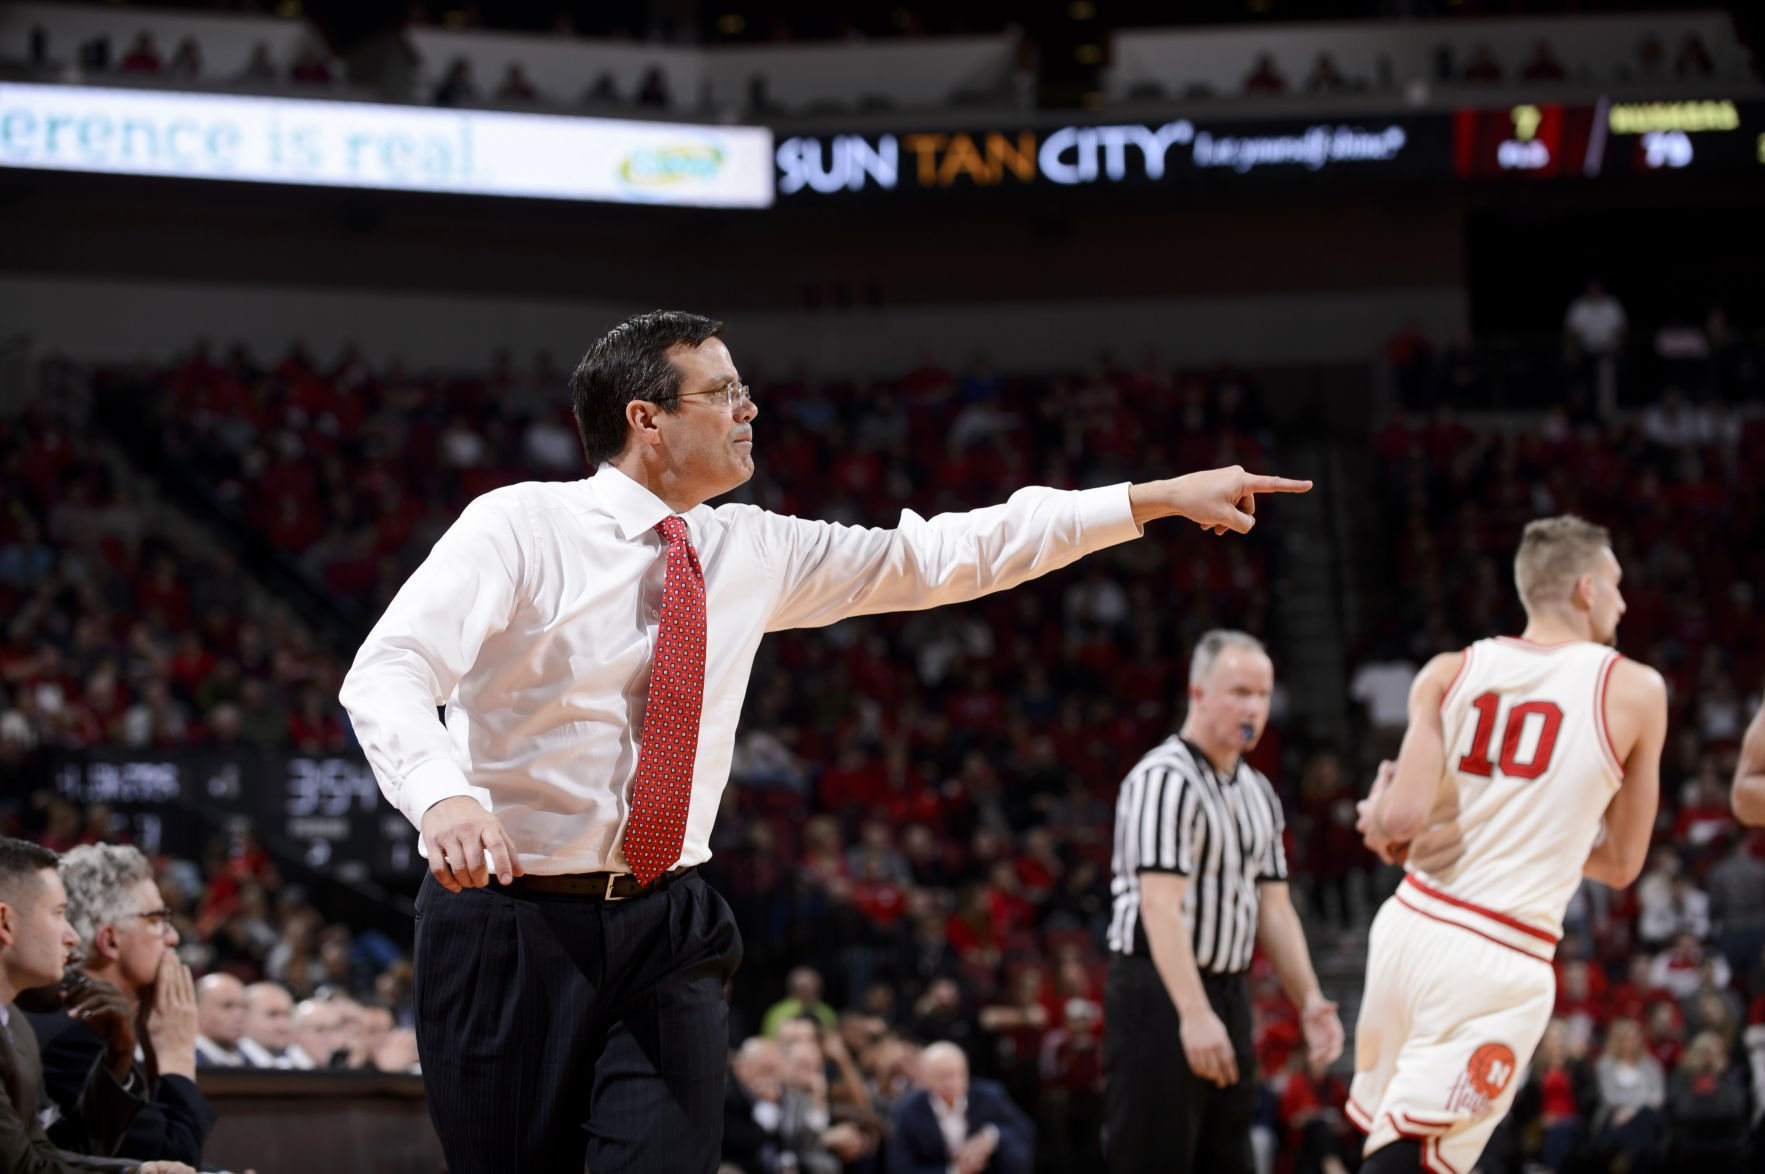 Big Ten releases Badger men's basketball opponents